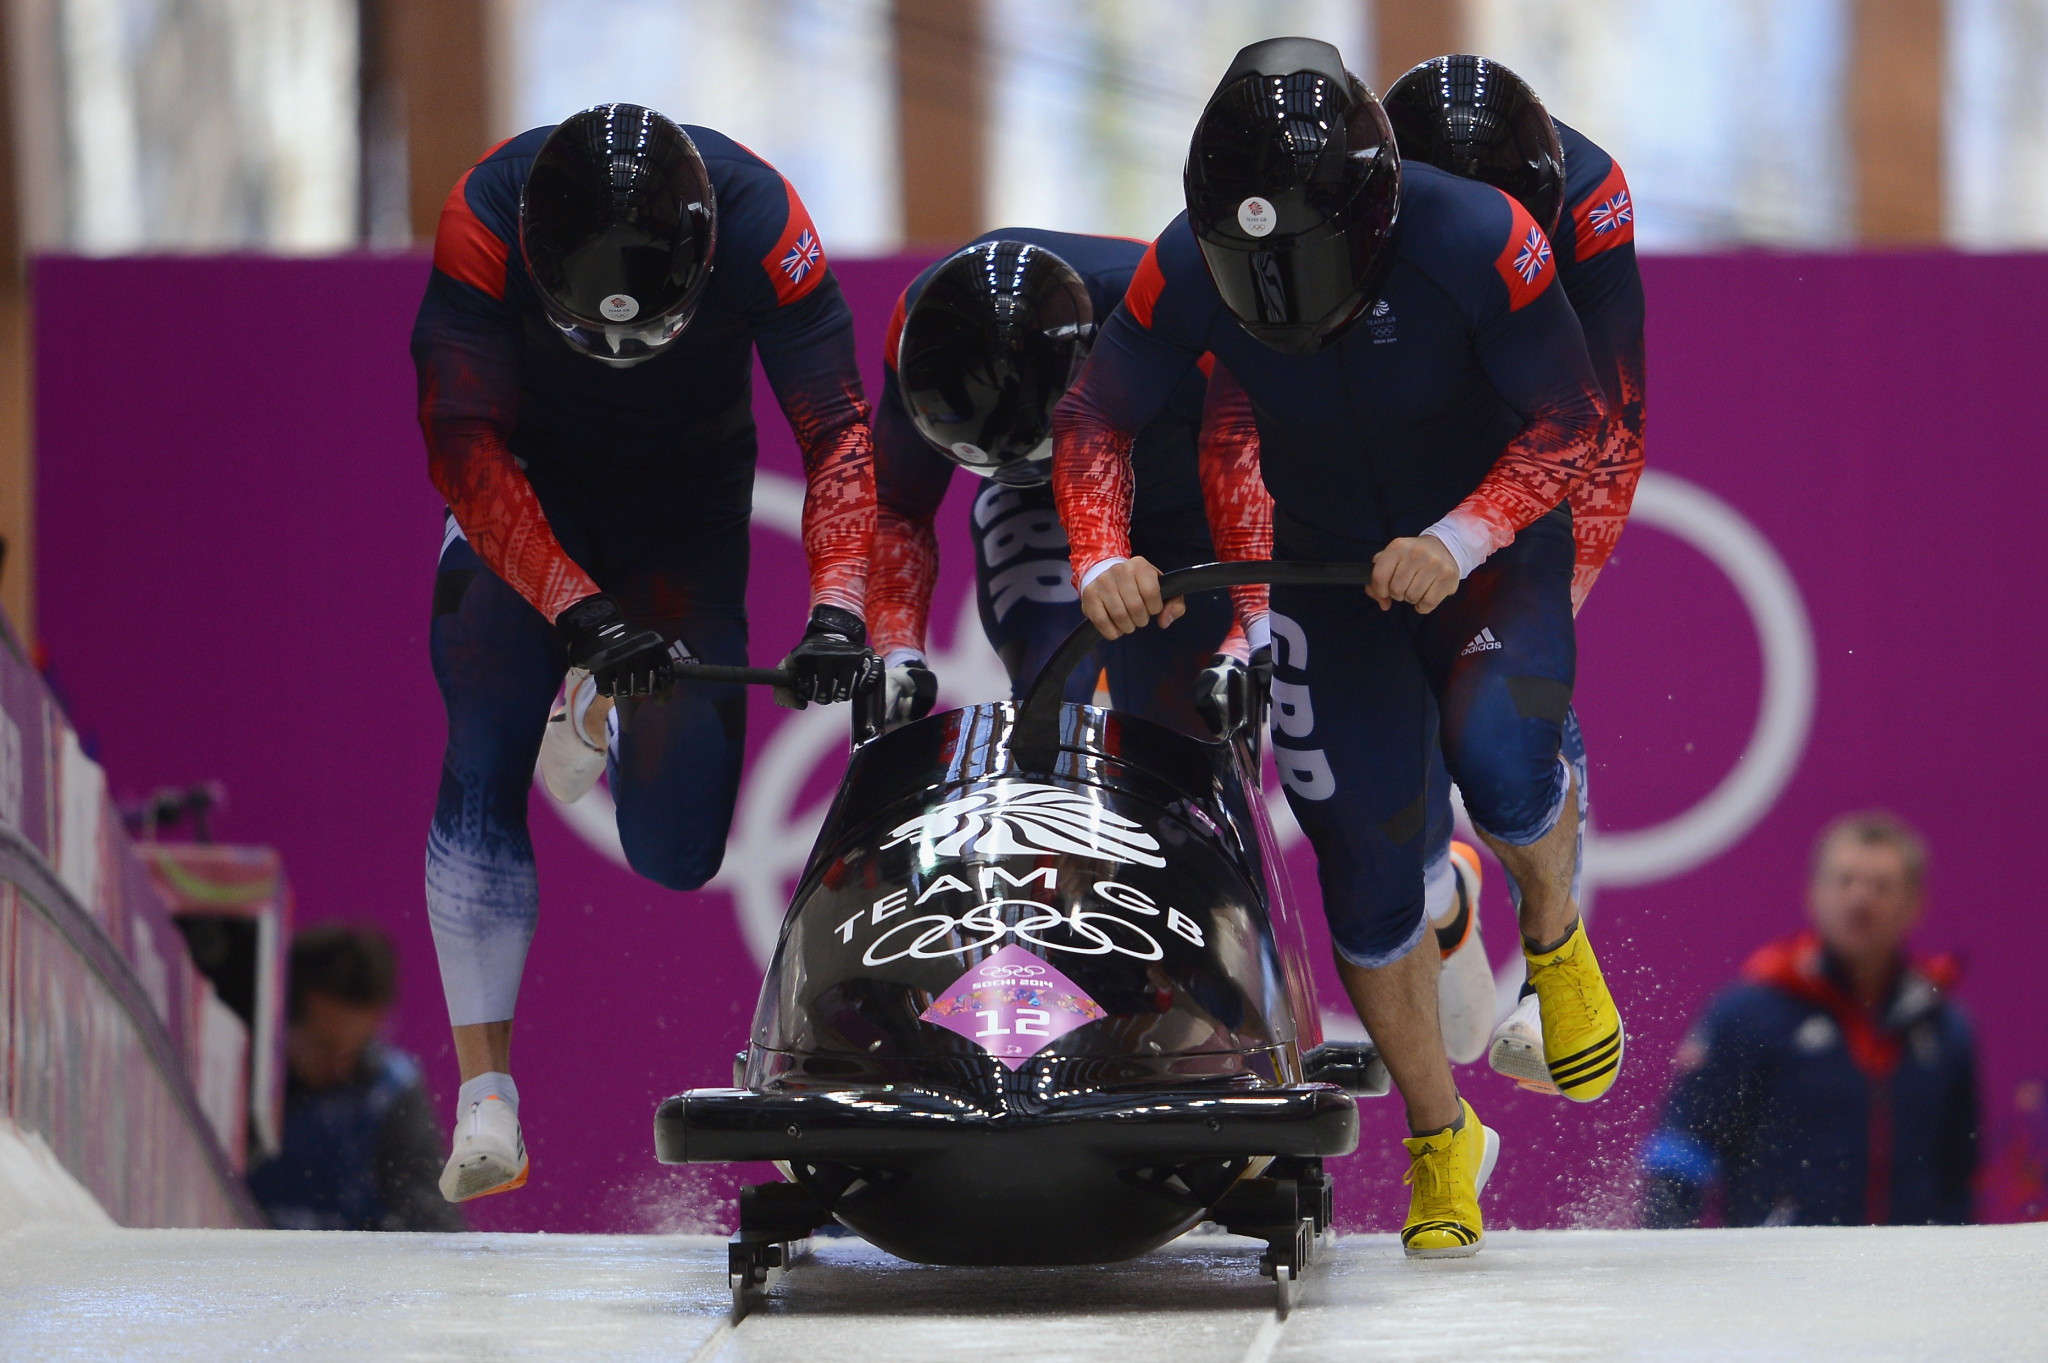 Britain are in line to move into the bronze medal position following the two Russian teams disqualifications ©Getty Images